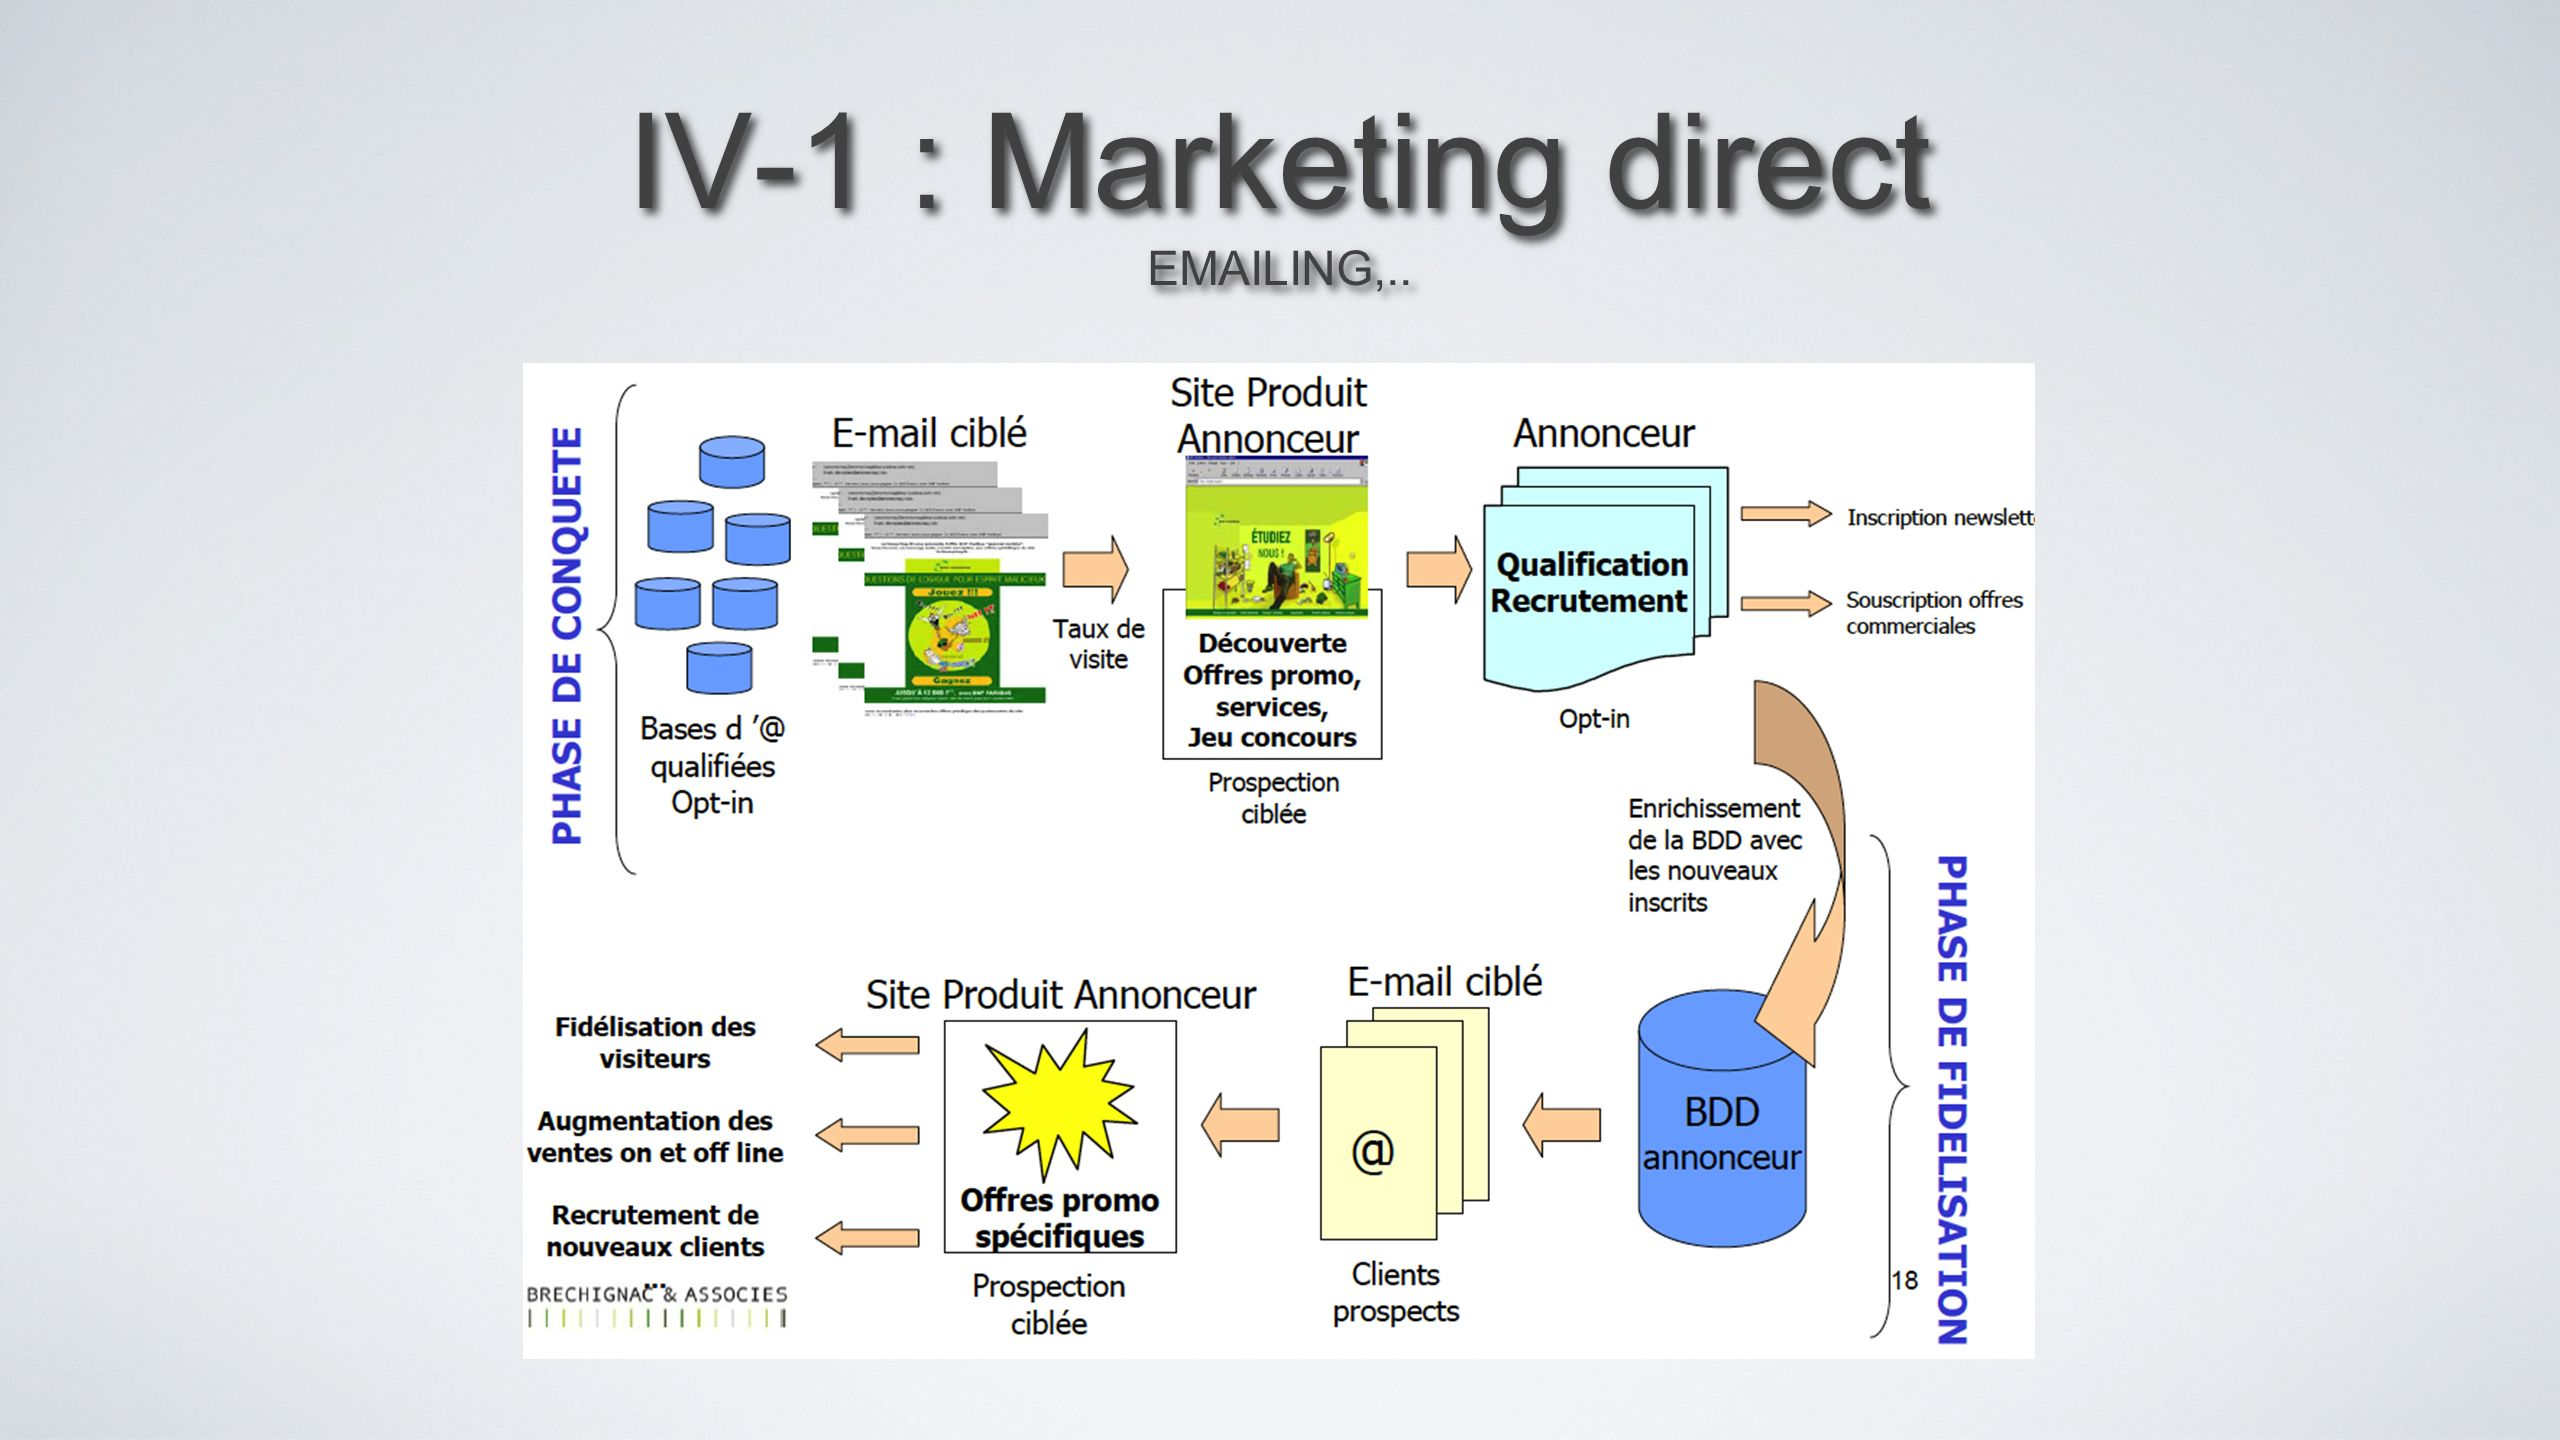 IV-1 : Marketing direct EMAILING,..